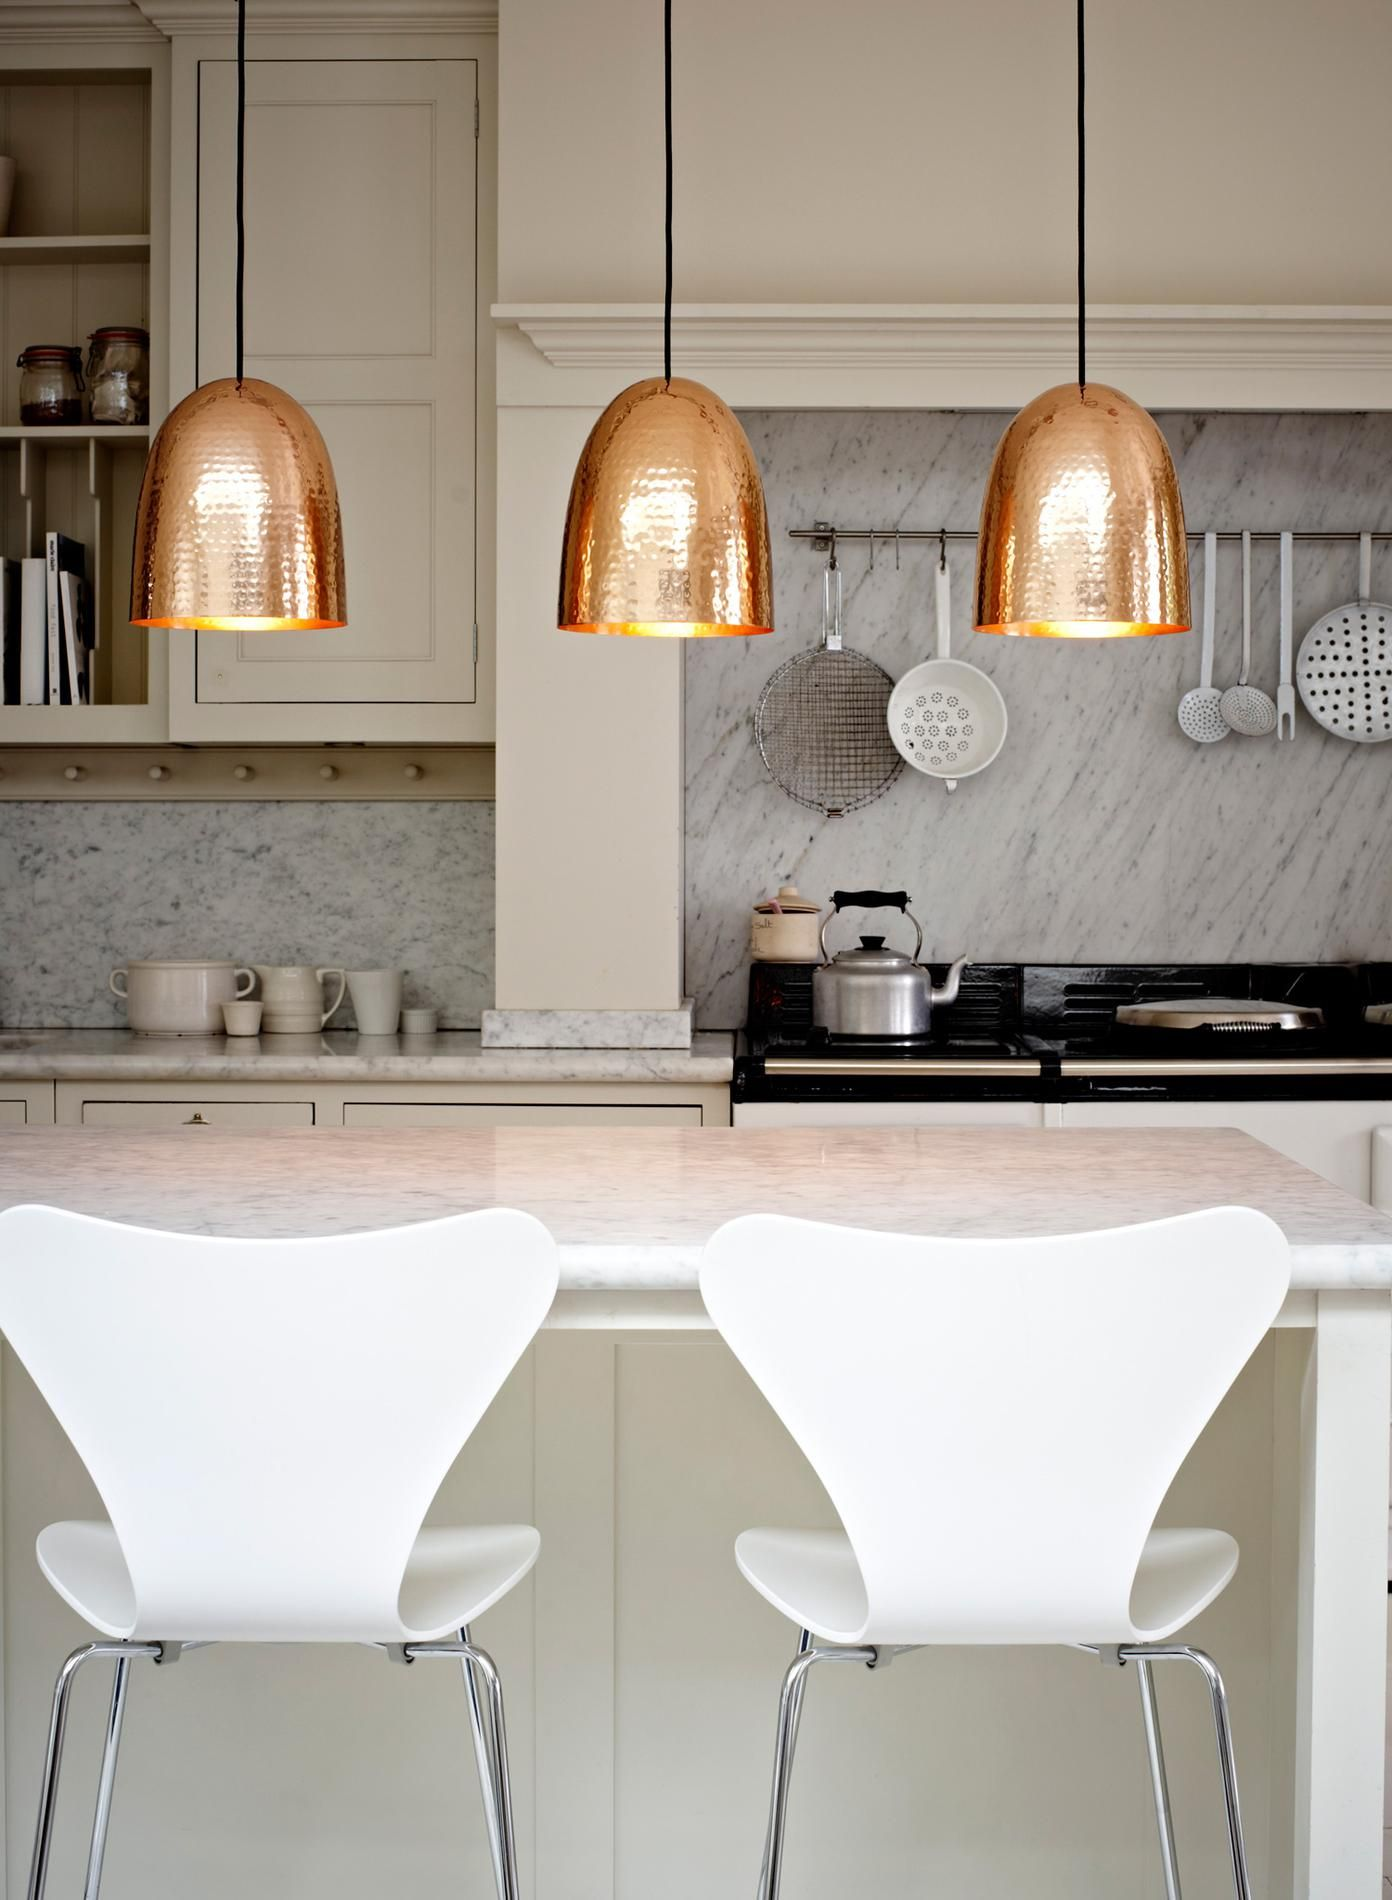 Examples Of Copper Pendant Lighting For Your Home - Images of kitchen pendant lighting